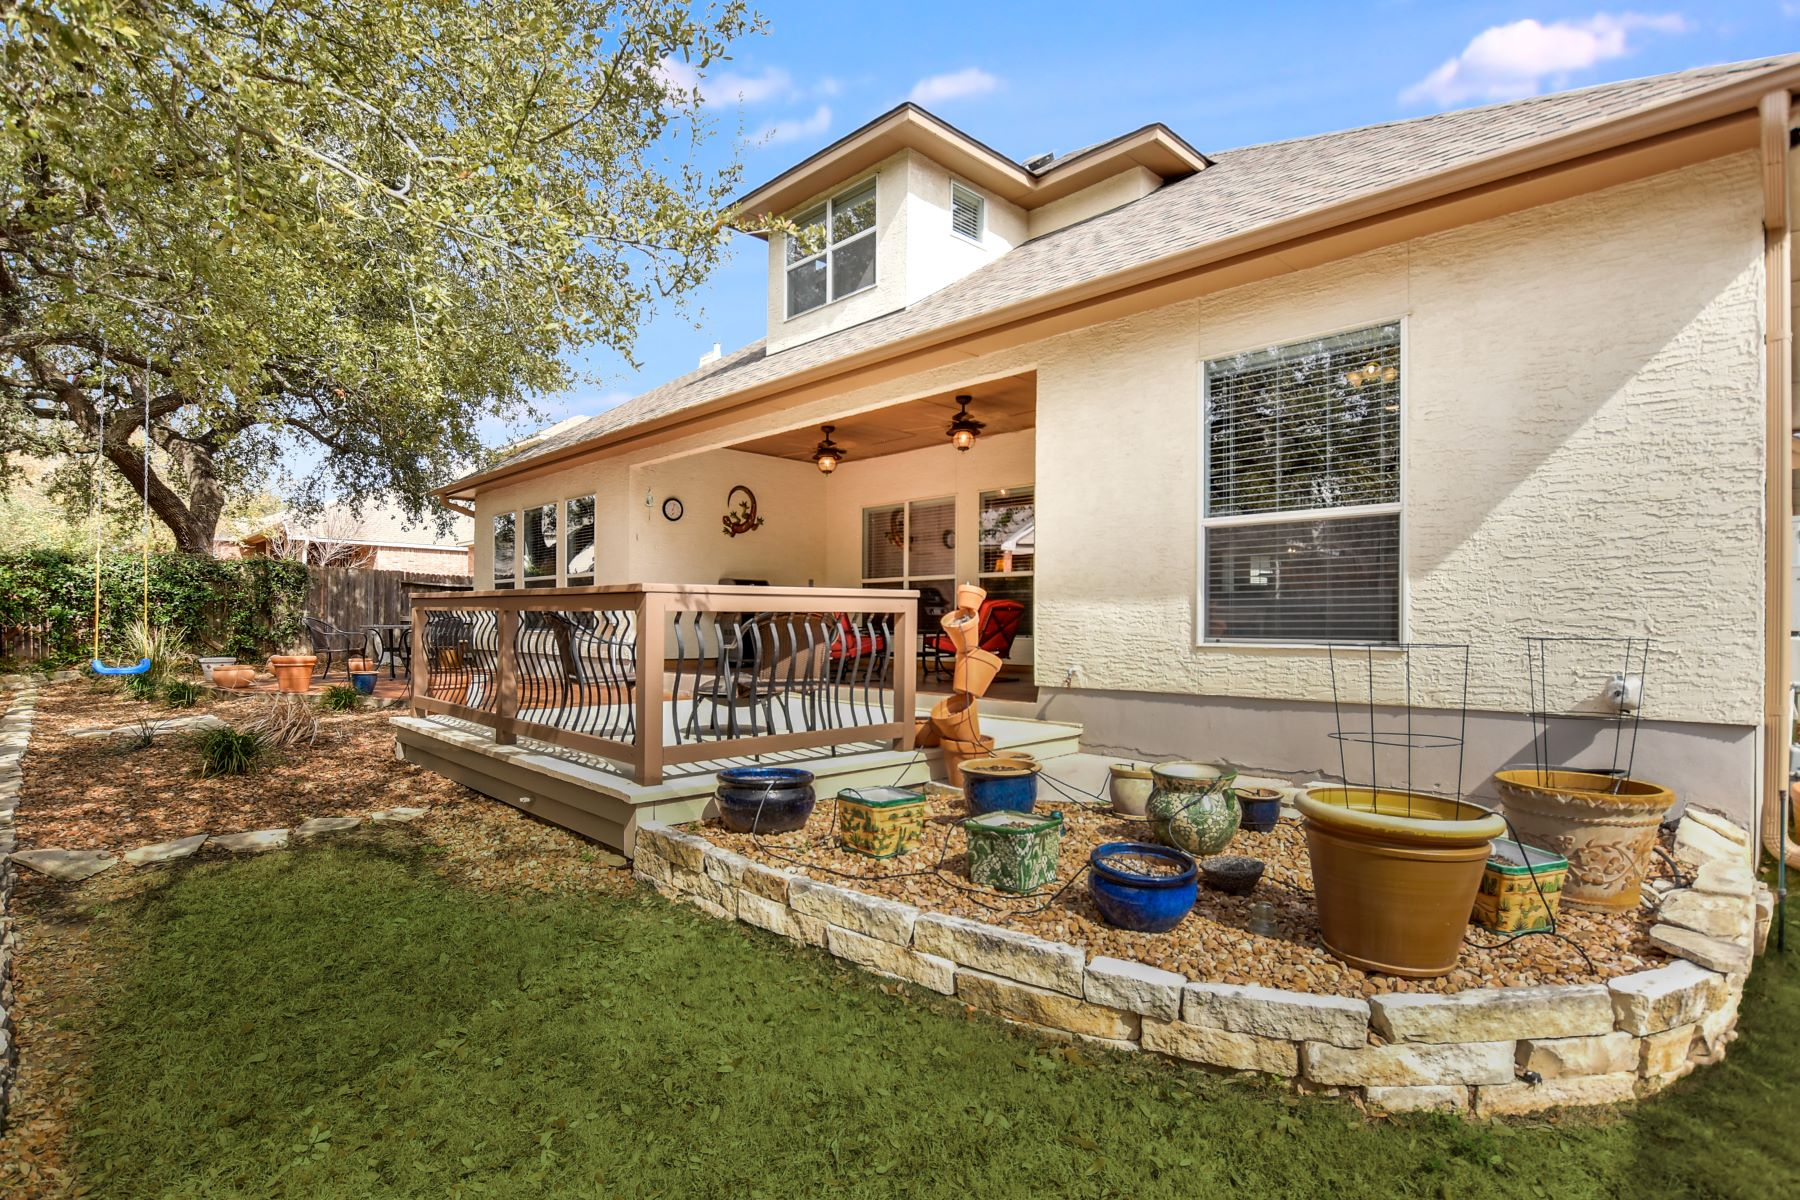 Additional photo for property listing at Stunning Spacious Home 25015 White Creek San Antonio, Texas 78255 United States